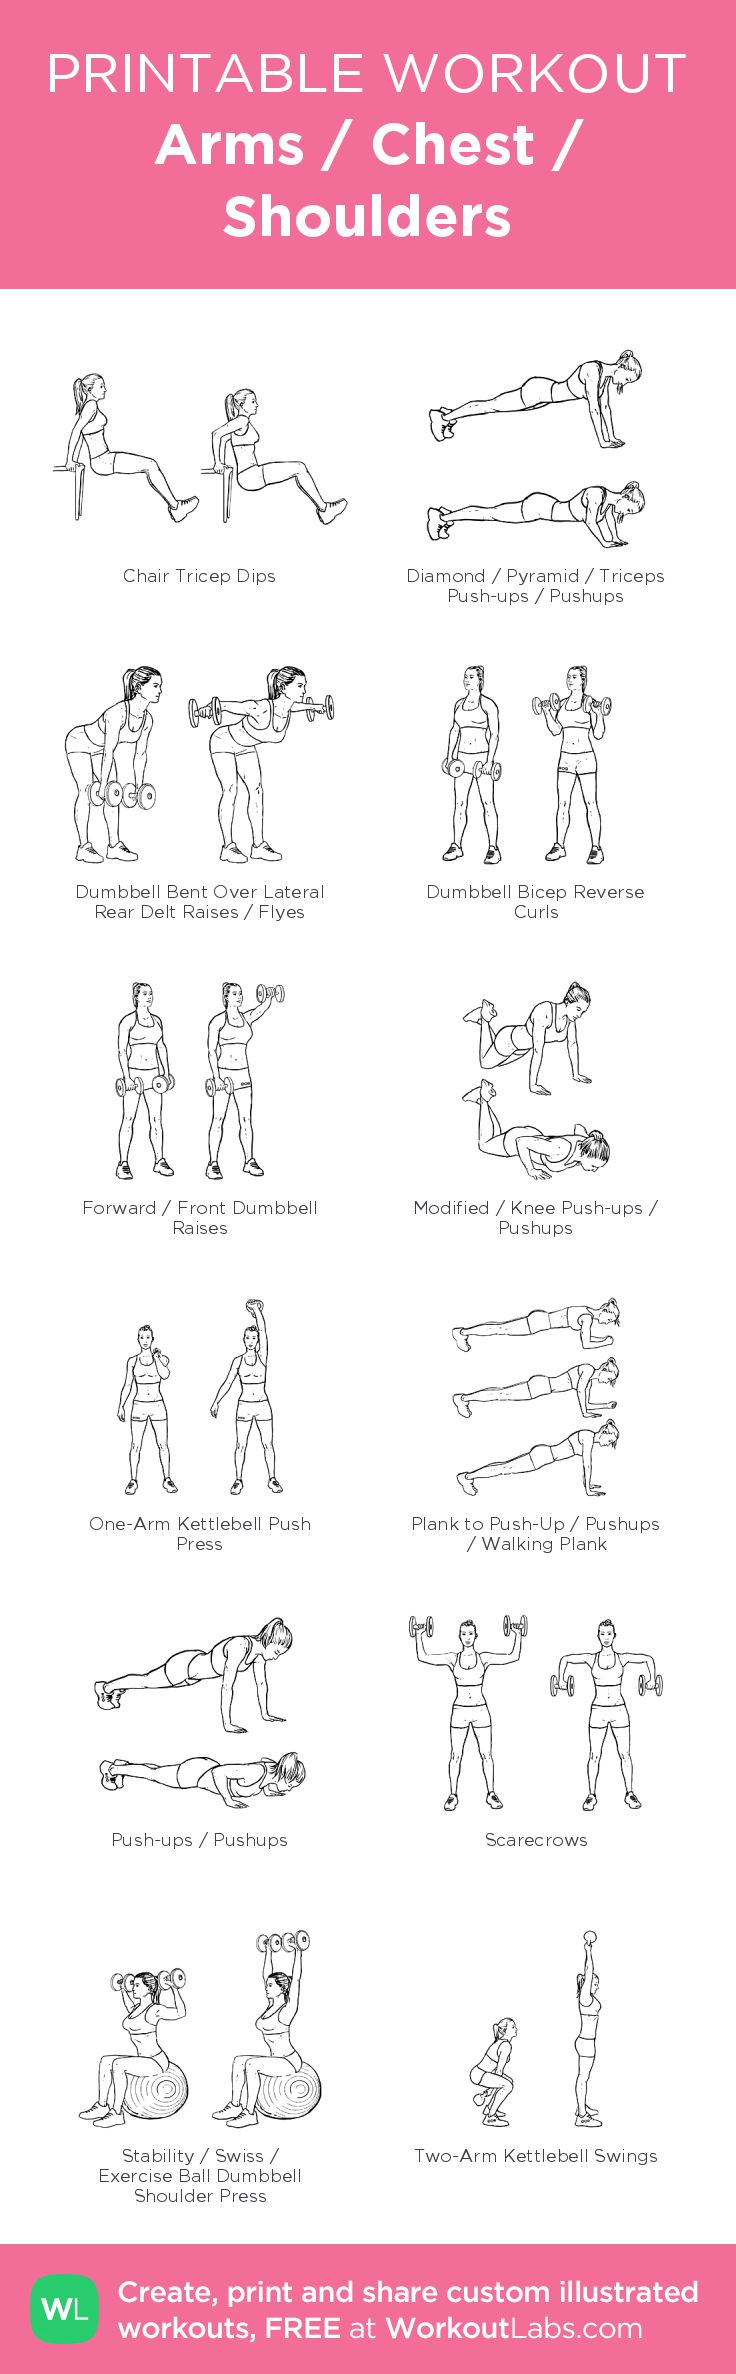 Arms / Chest / Shoulders– my custom exercise plan created at WorkoutLabs.com • Click through to download as a printable workout PDF #customworkout